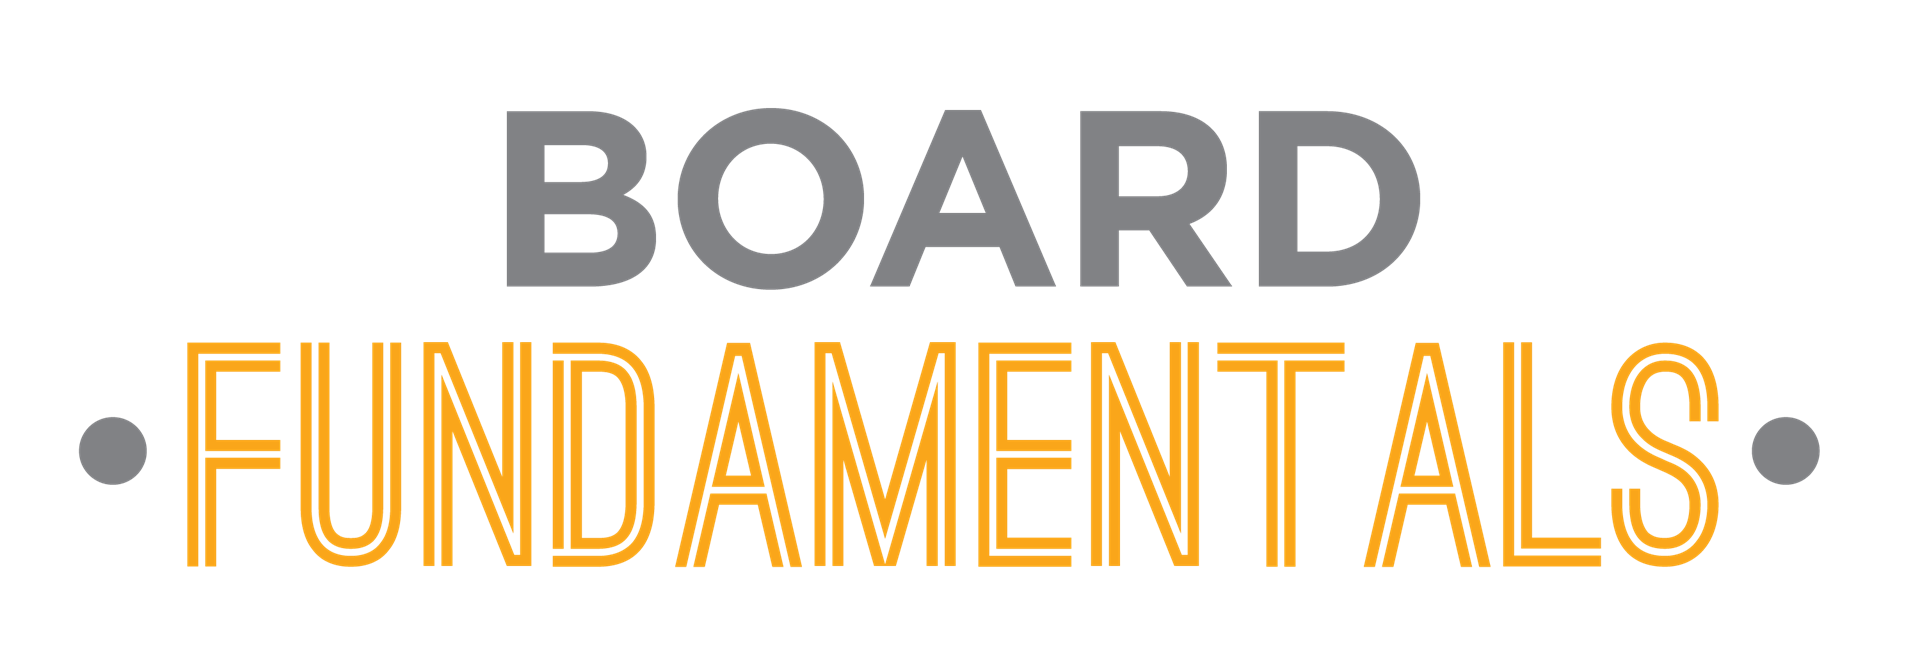 Wyoming Nonprofit Network - Board Fundamentals Workshops